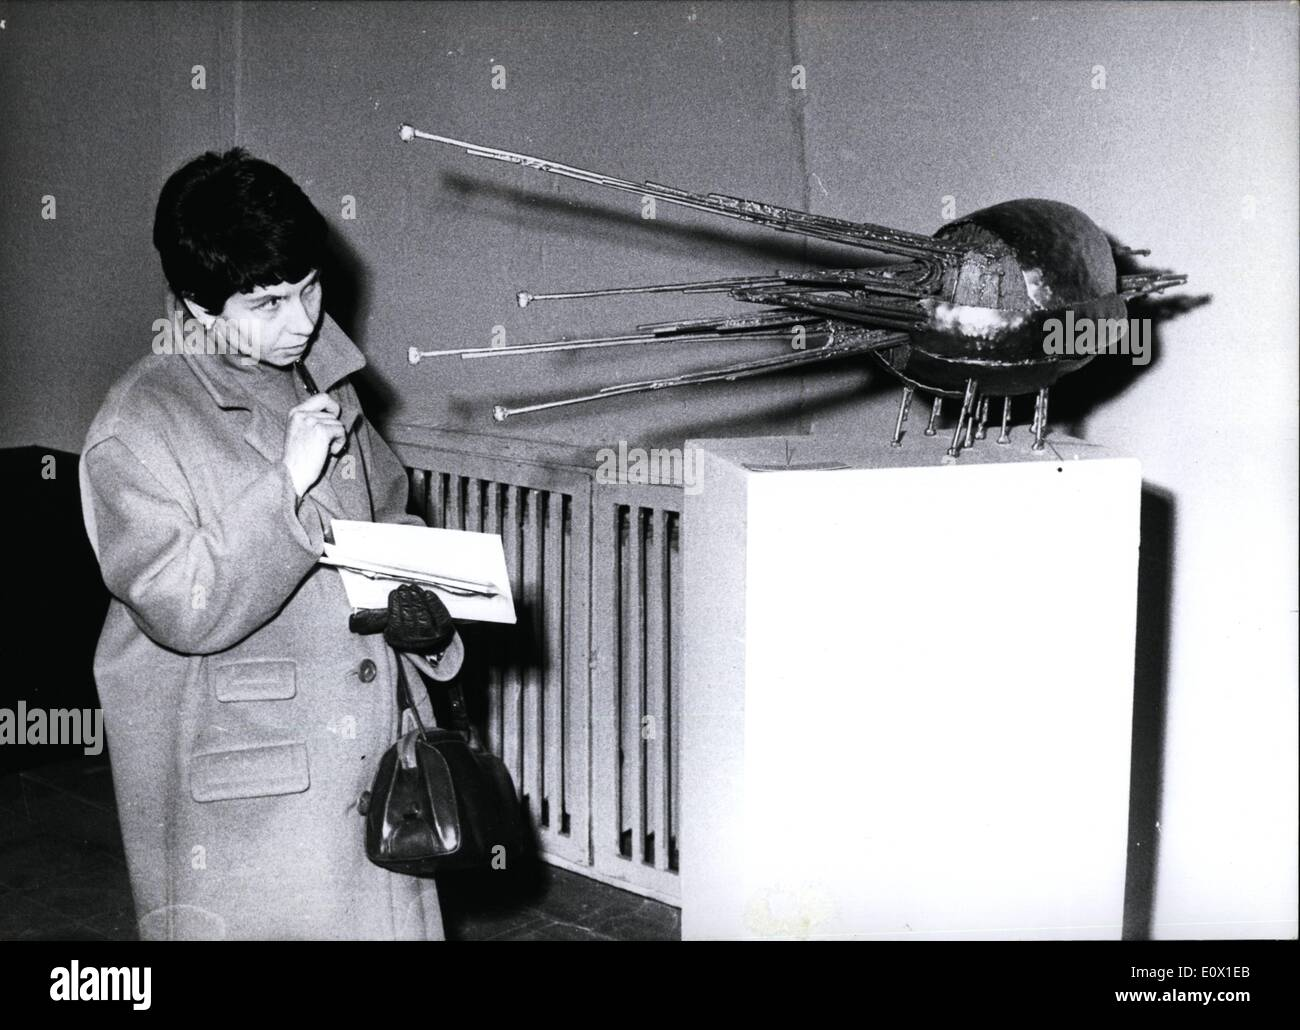 Dec. 12, 1964 - Take care! Insect-bites! ''Insect'' Peter Konitz calls this metal-sculpture presented at the yearly ''General-Show of the Artists from Nordrhein-Westfalen'', which takes place at present at the ''Kunstpalast'' (Palace of Art) in Düsseldorf. - Stock Image